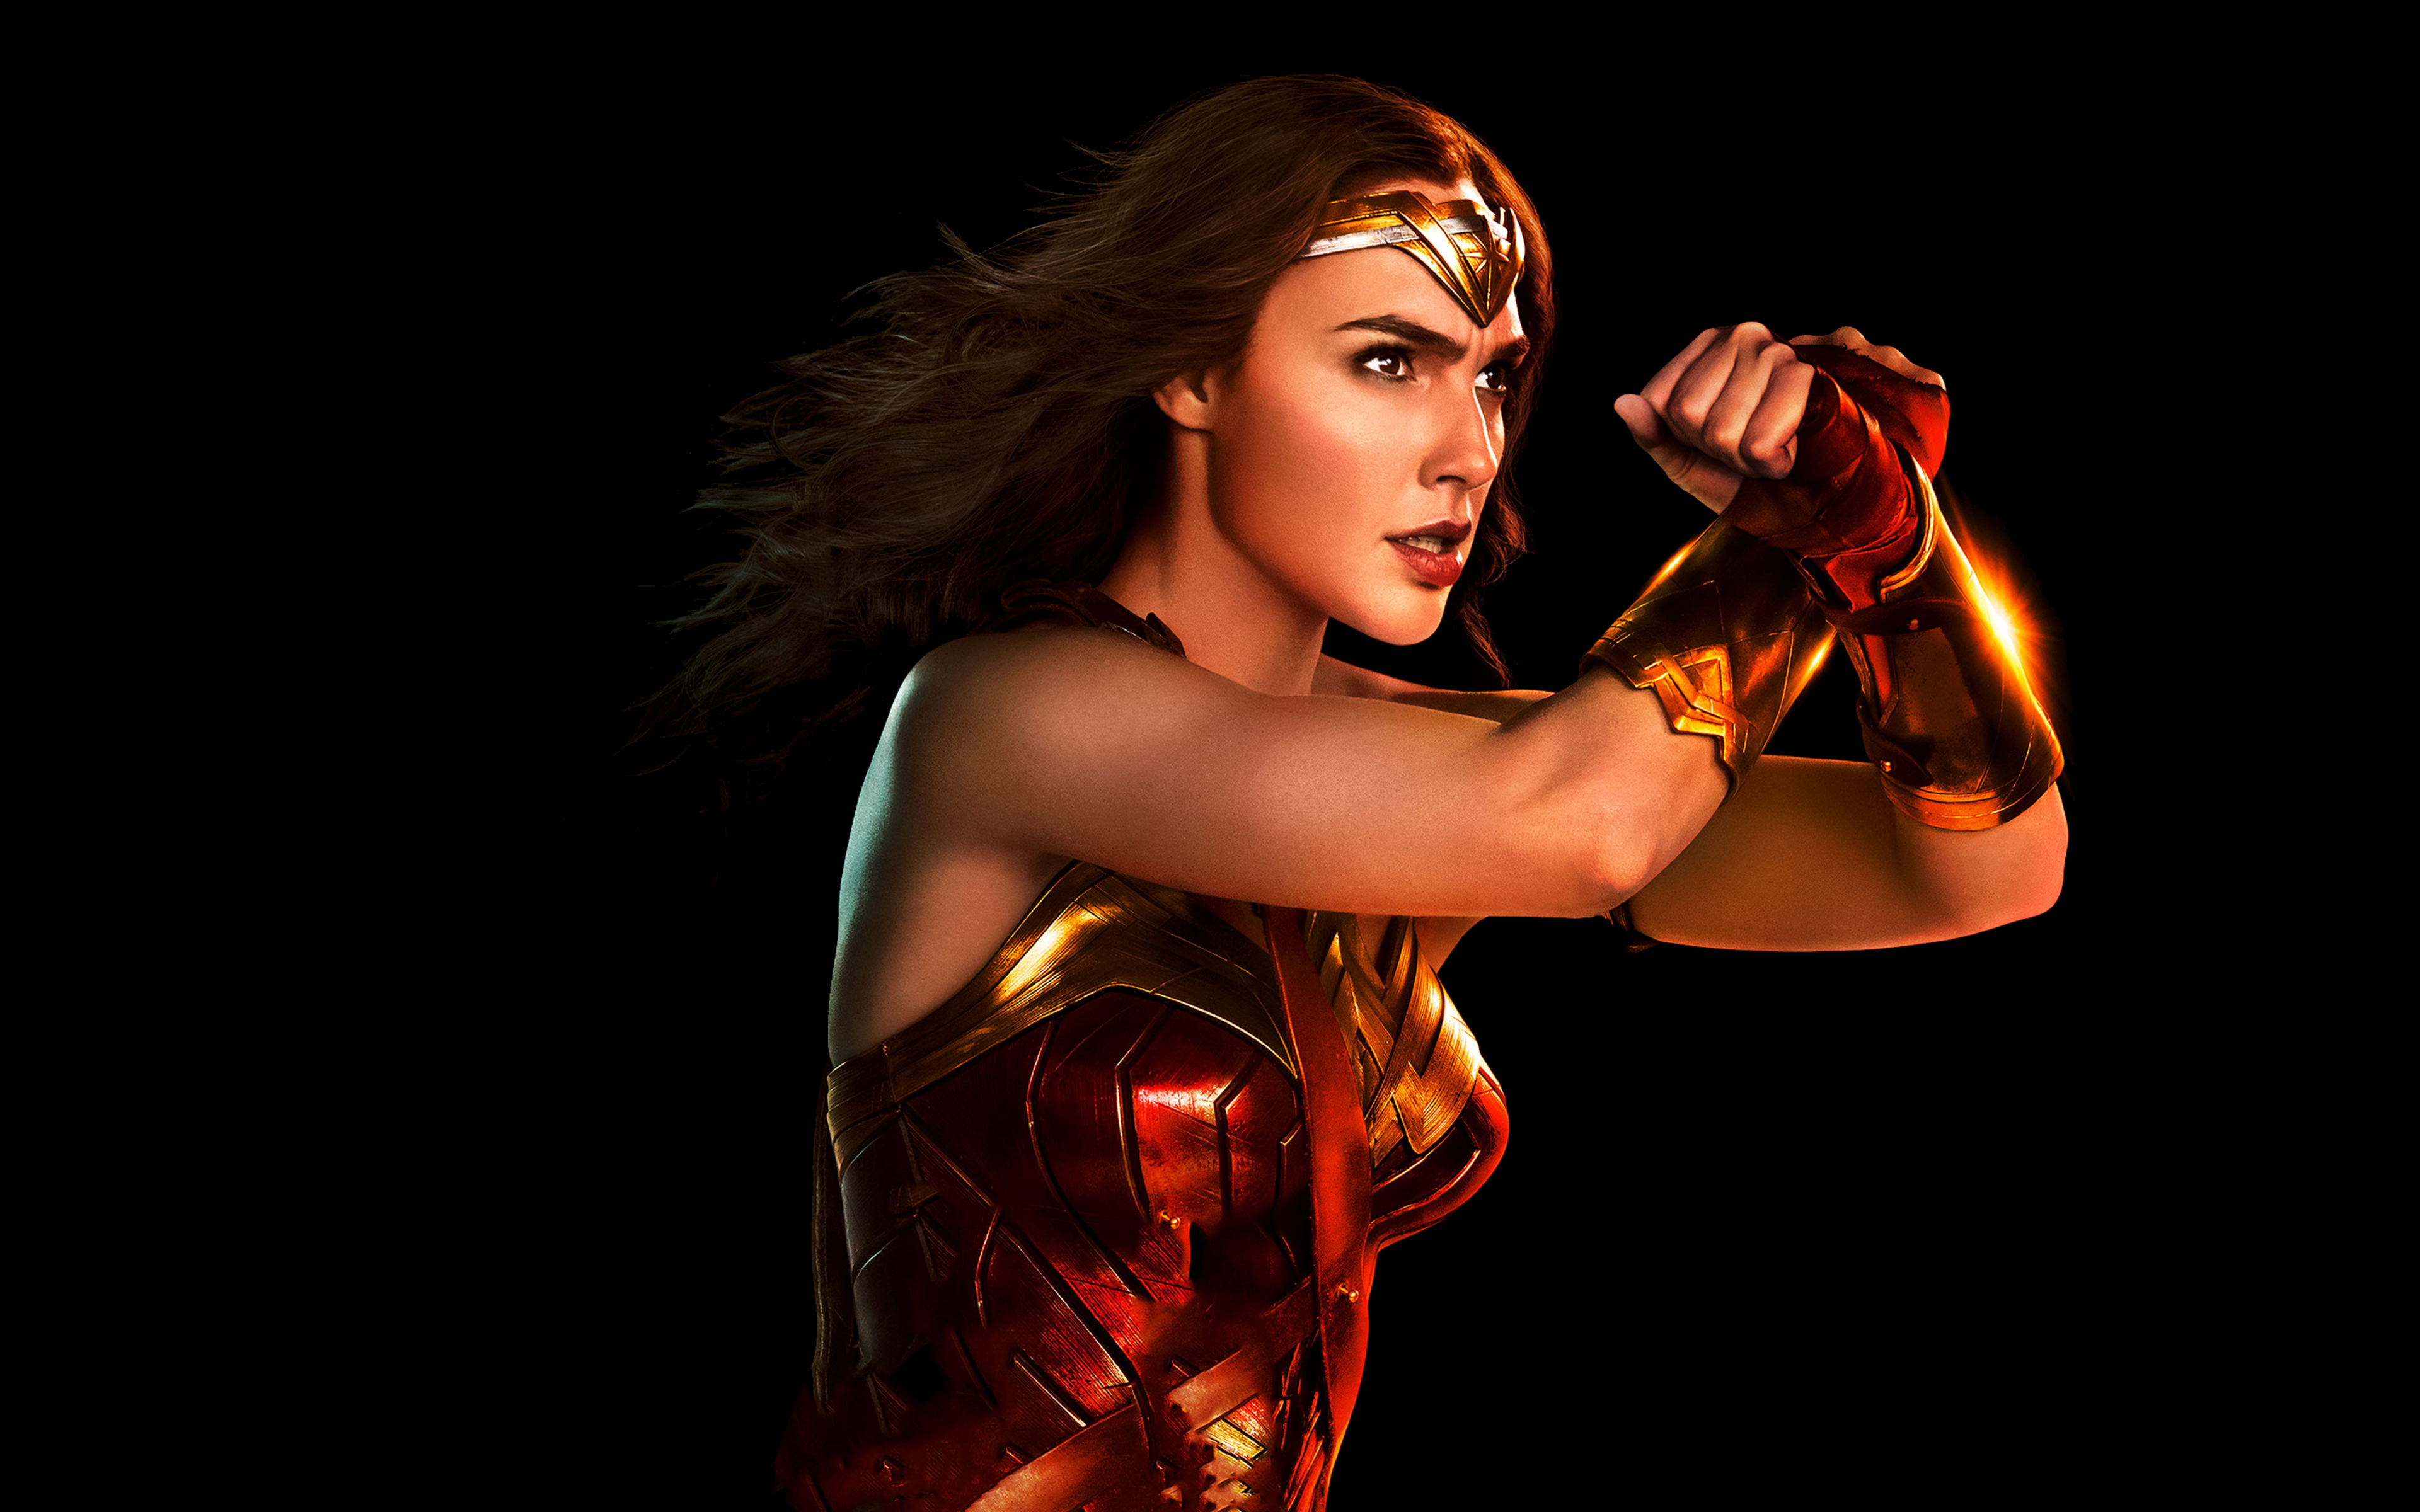 2017 Wonder Woman 4k Hd Movies 4k Wallpapers Images: 3840x2400 Wonder Woman Justice League 2017 4k 4k HD 4k